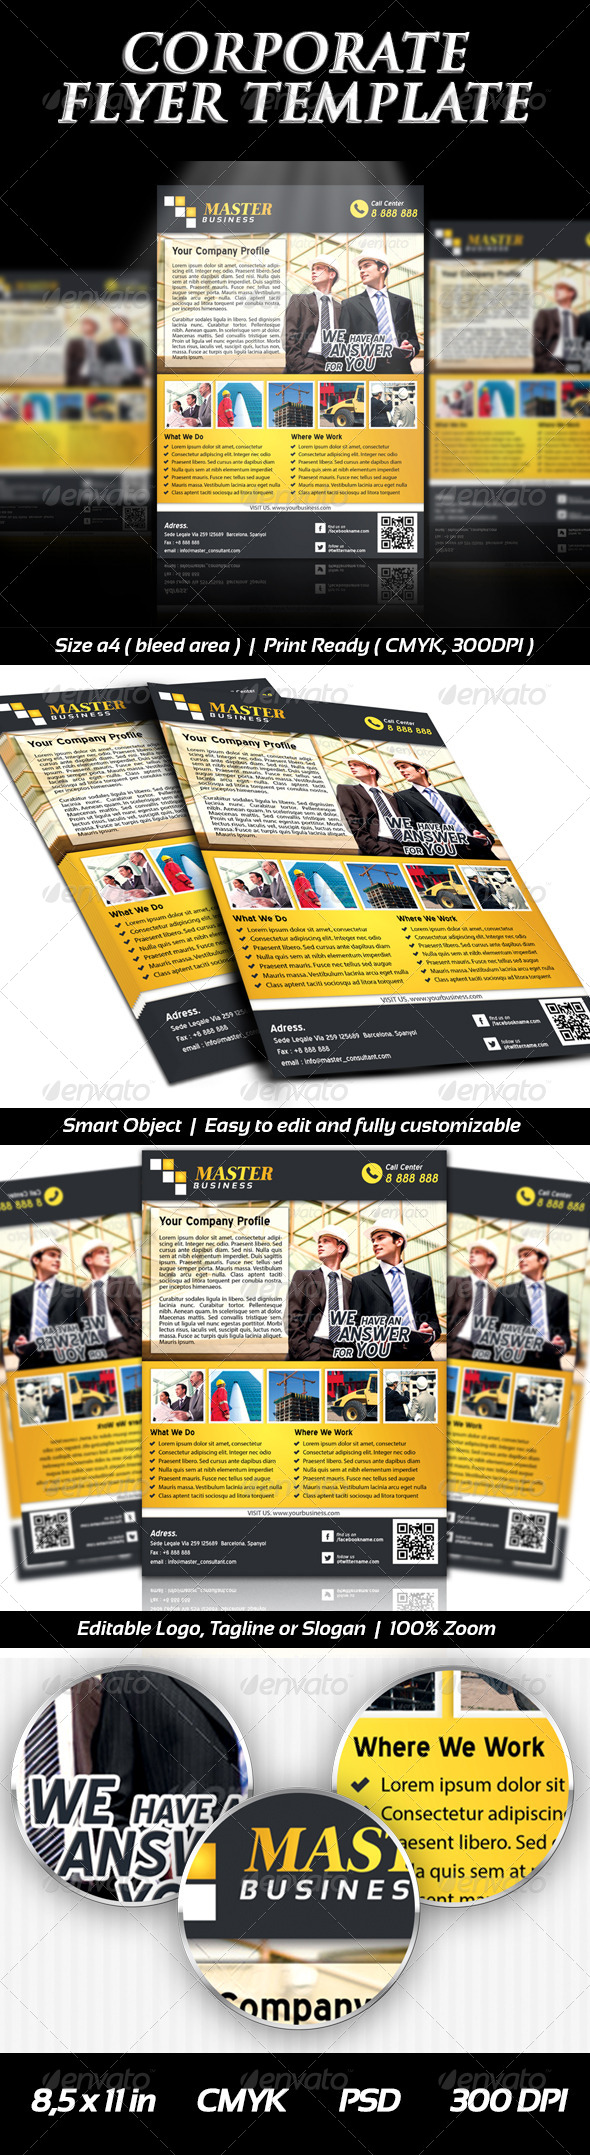 Corporate Business Flyer Templates - Professional - Corporate Flyers